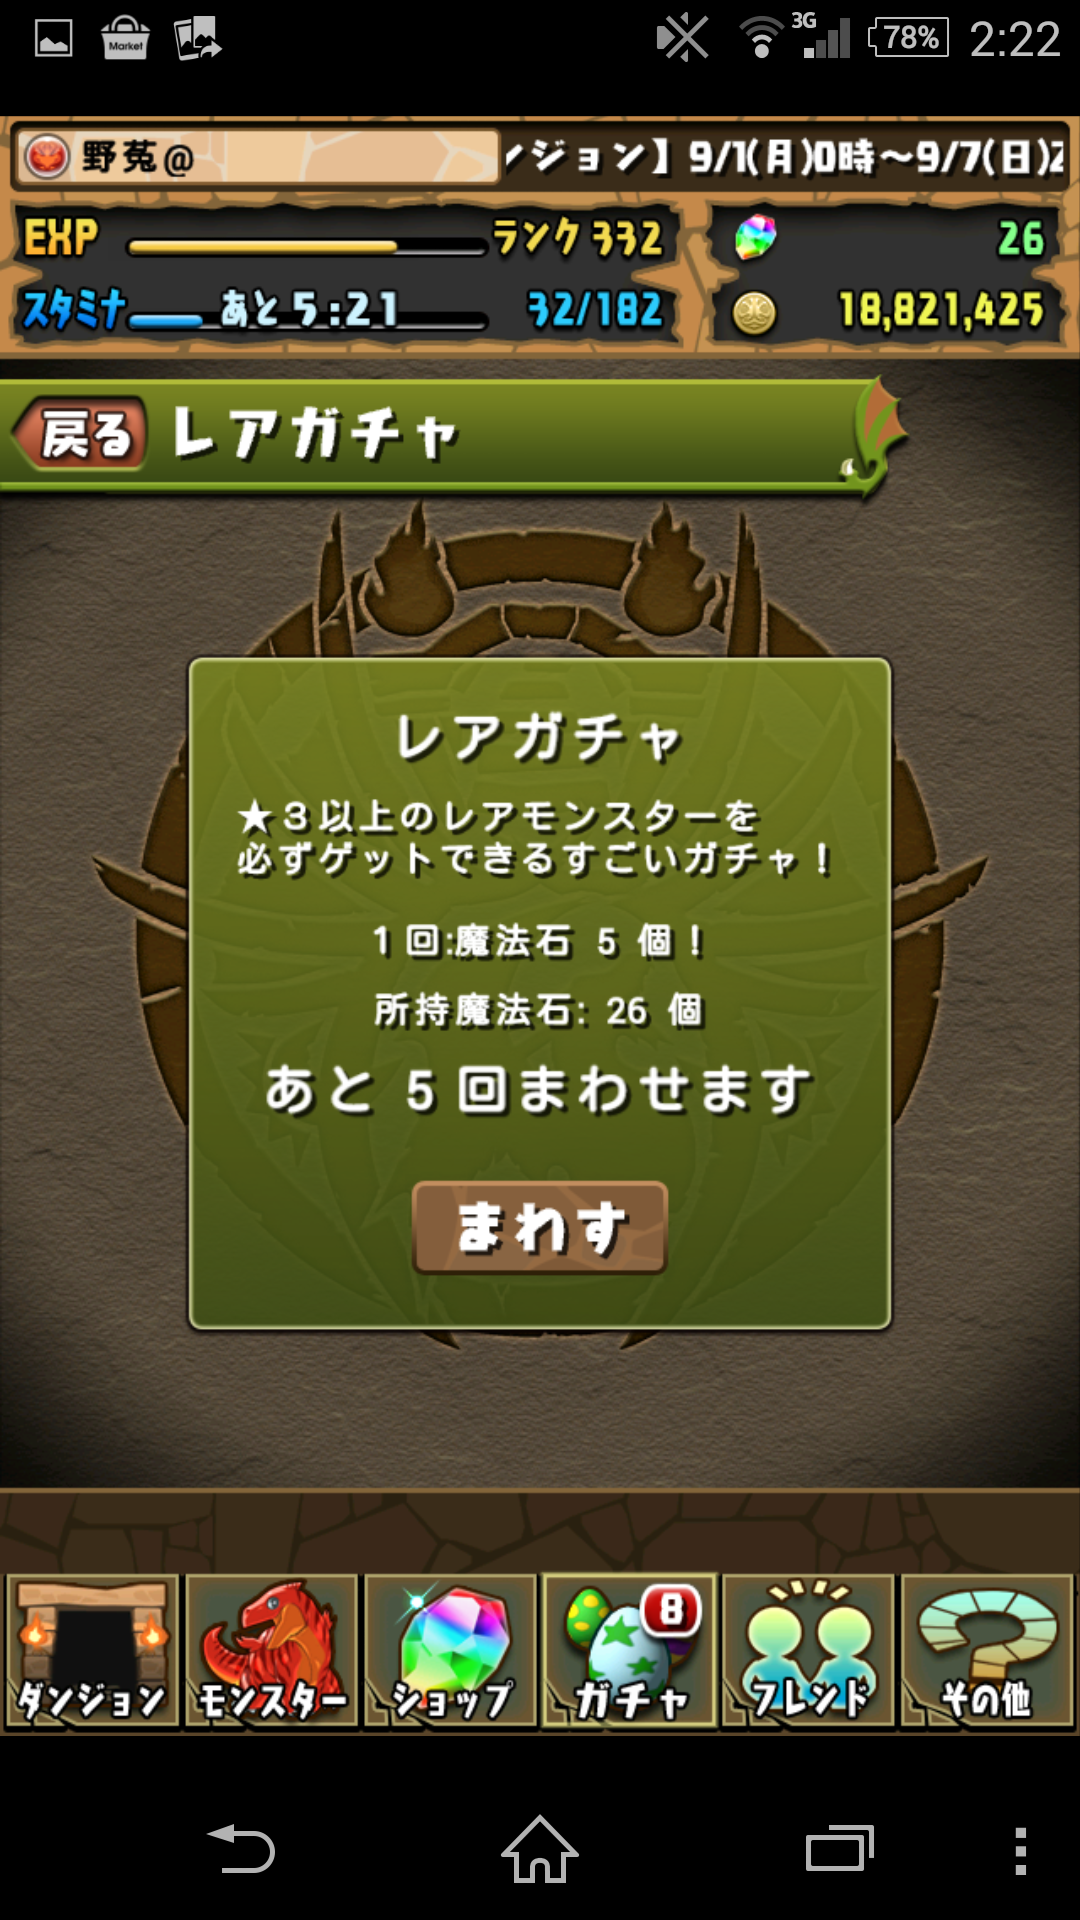 Screenshot_2014-09-08-02-22-38.png